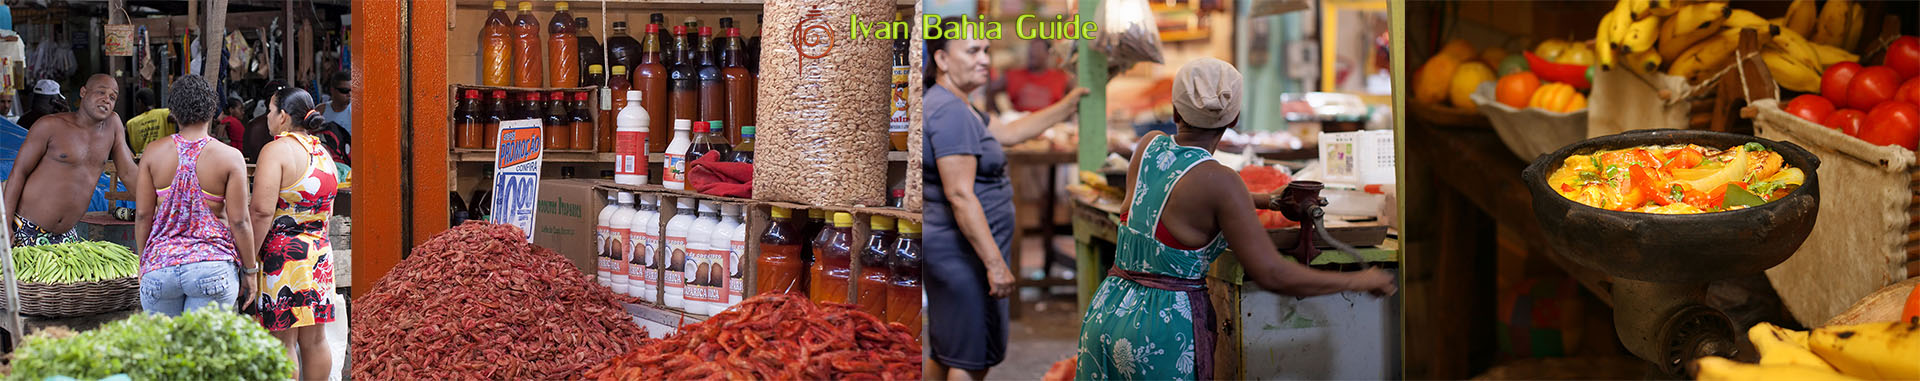 Ivan Bahia Guide, buy fish & vegetables on the market and learn to cook moqueca with your personal Chef